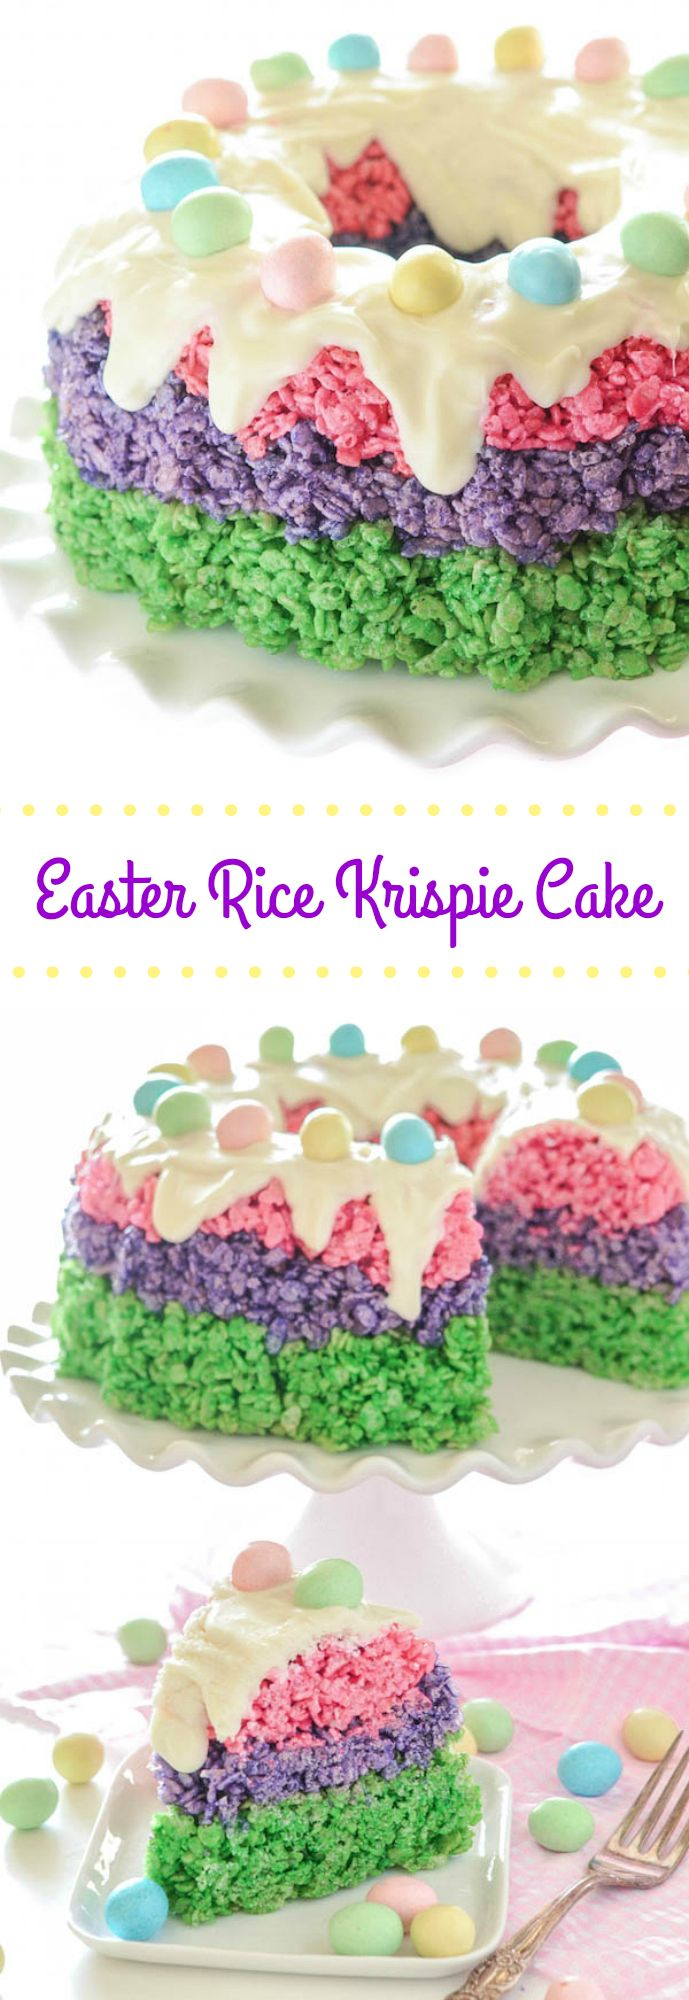 LOVE LOVE LOVE this Easter Rice Krispie Cake! So easy! Festive easy no-bake dessert for #Easter!